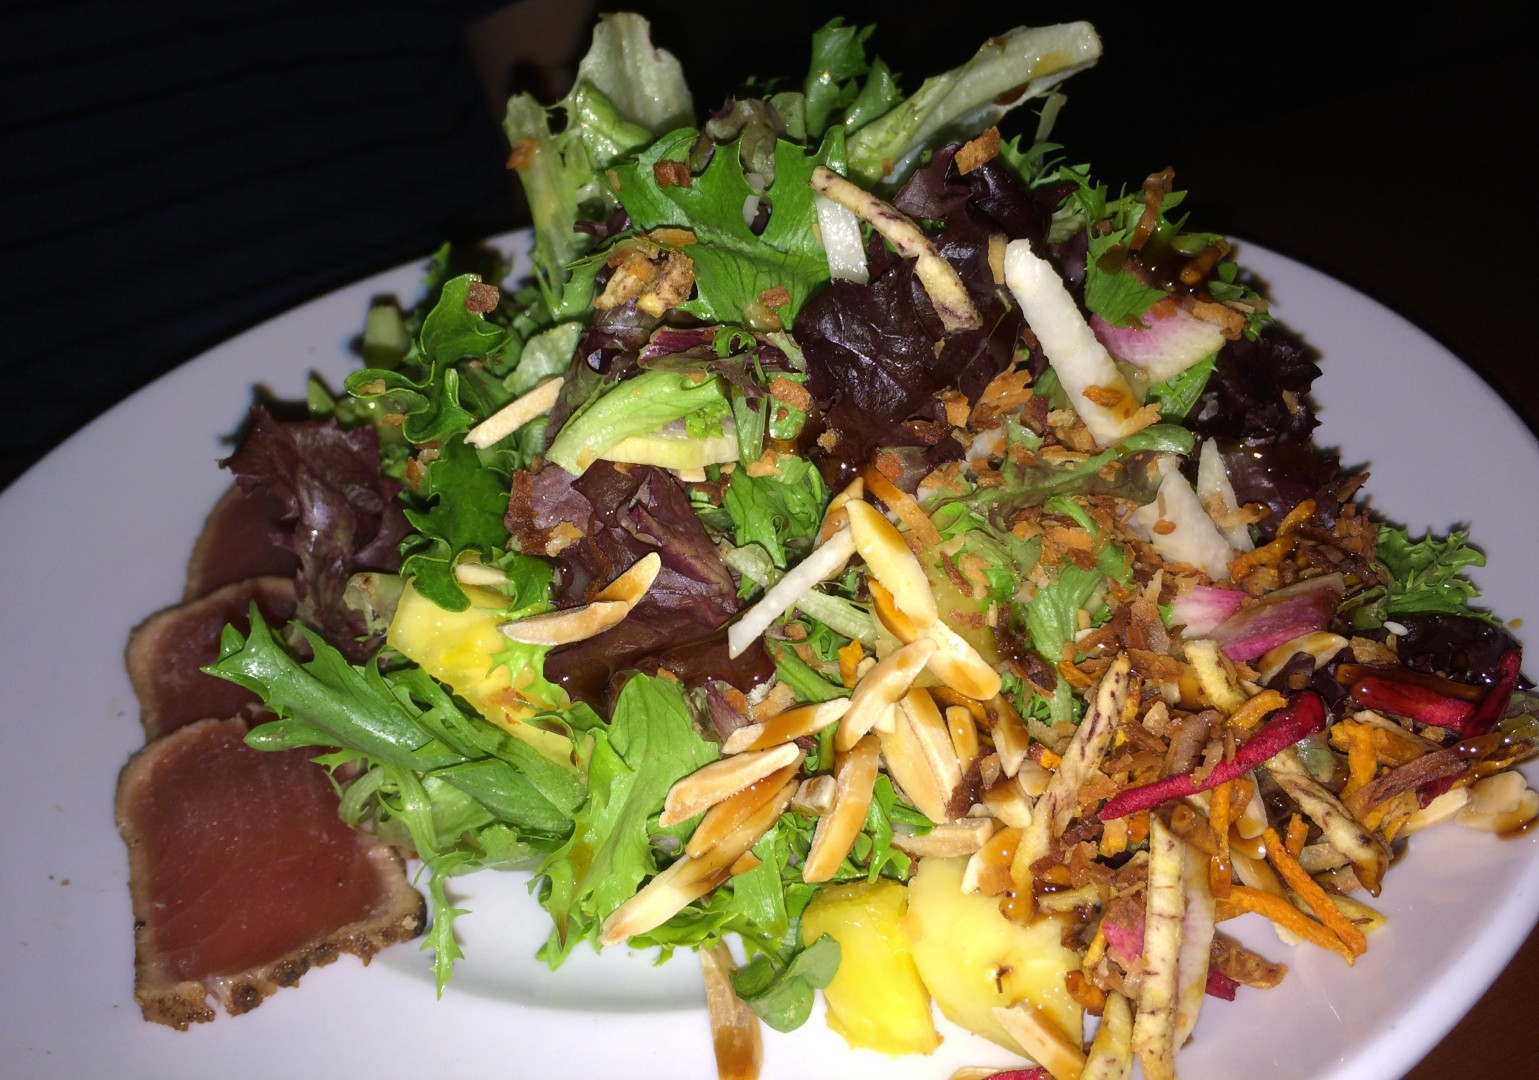 The Maui Tuna Crunch at Seasons 52 is a generous entree salad that comes in at 390 calories.